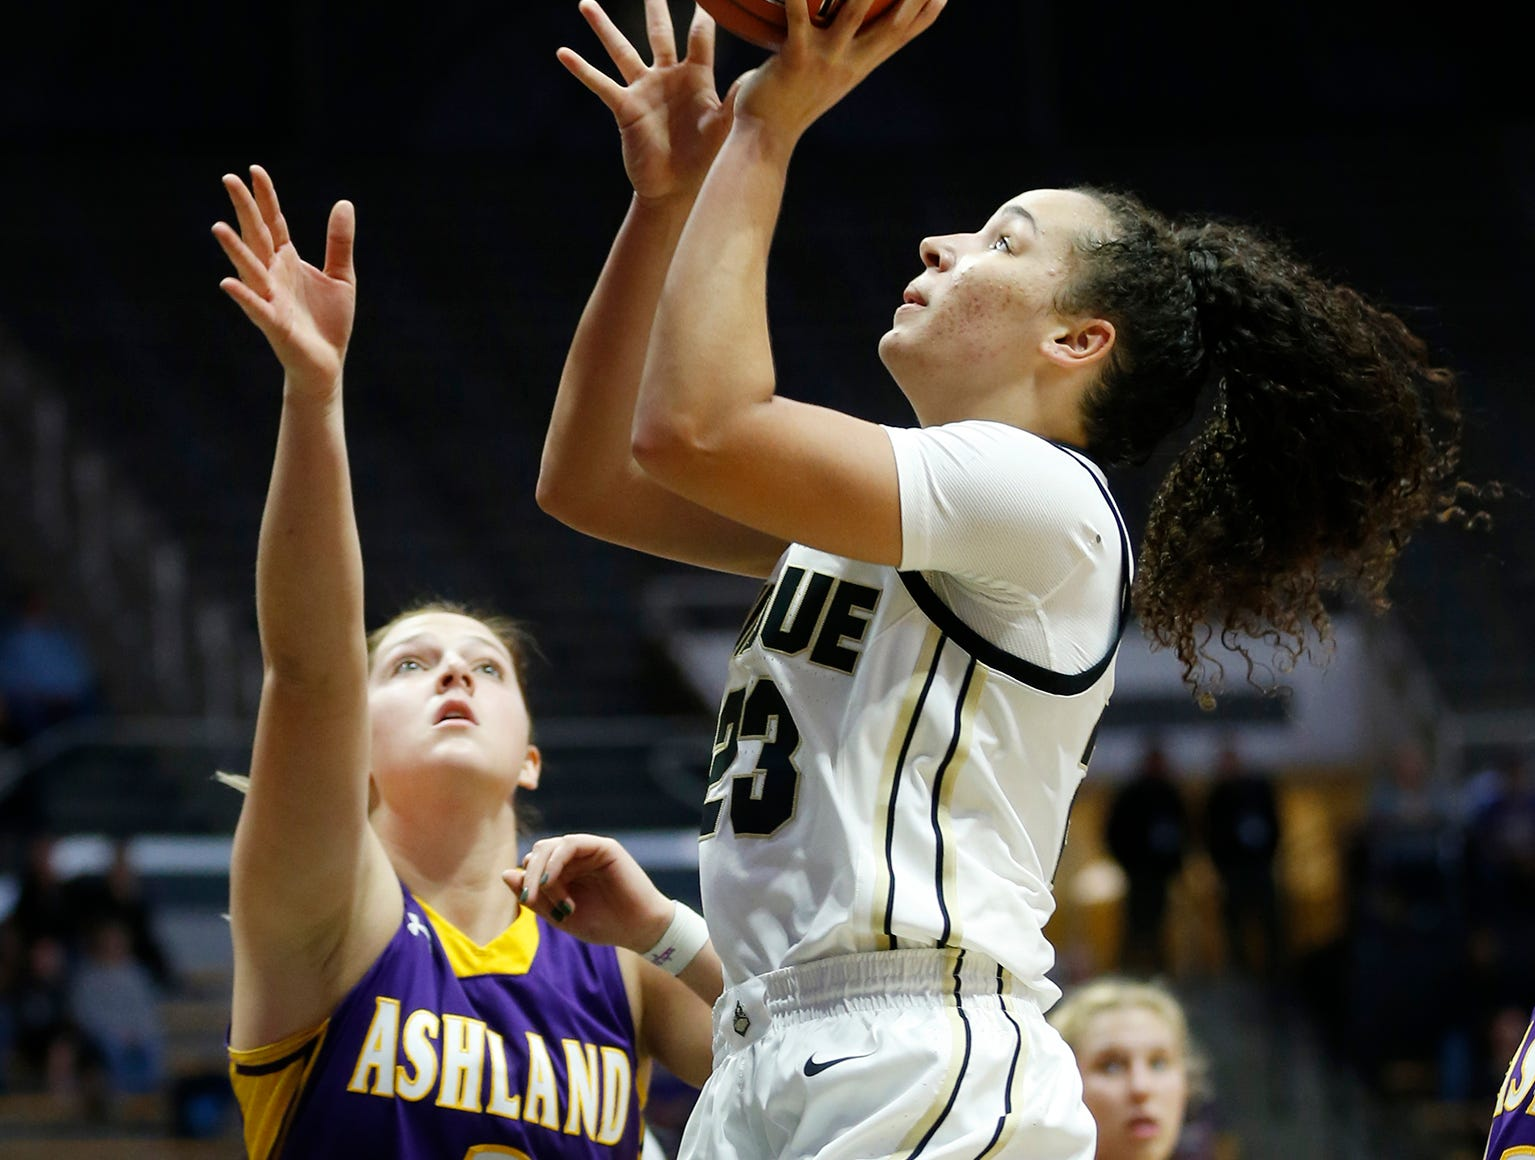 Kayana Traylor of Purdue with a shot over Sara Price of Ashland Sunday, November 4, 2018, at Mackey Arena. Purdue defeated Ashland 85-69.